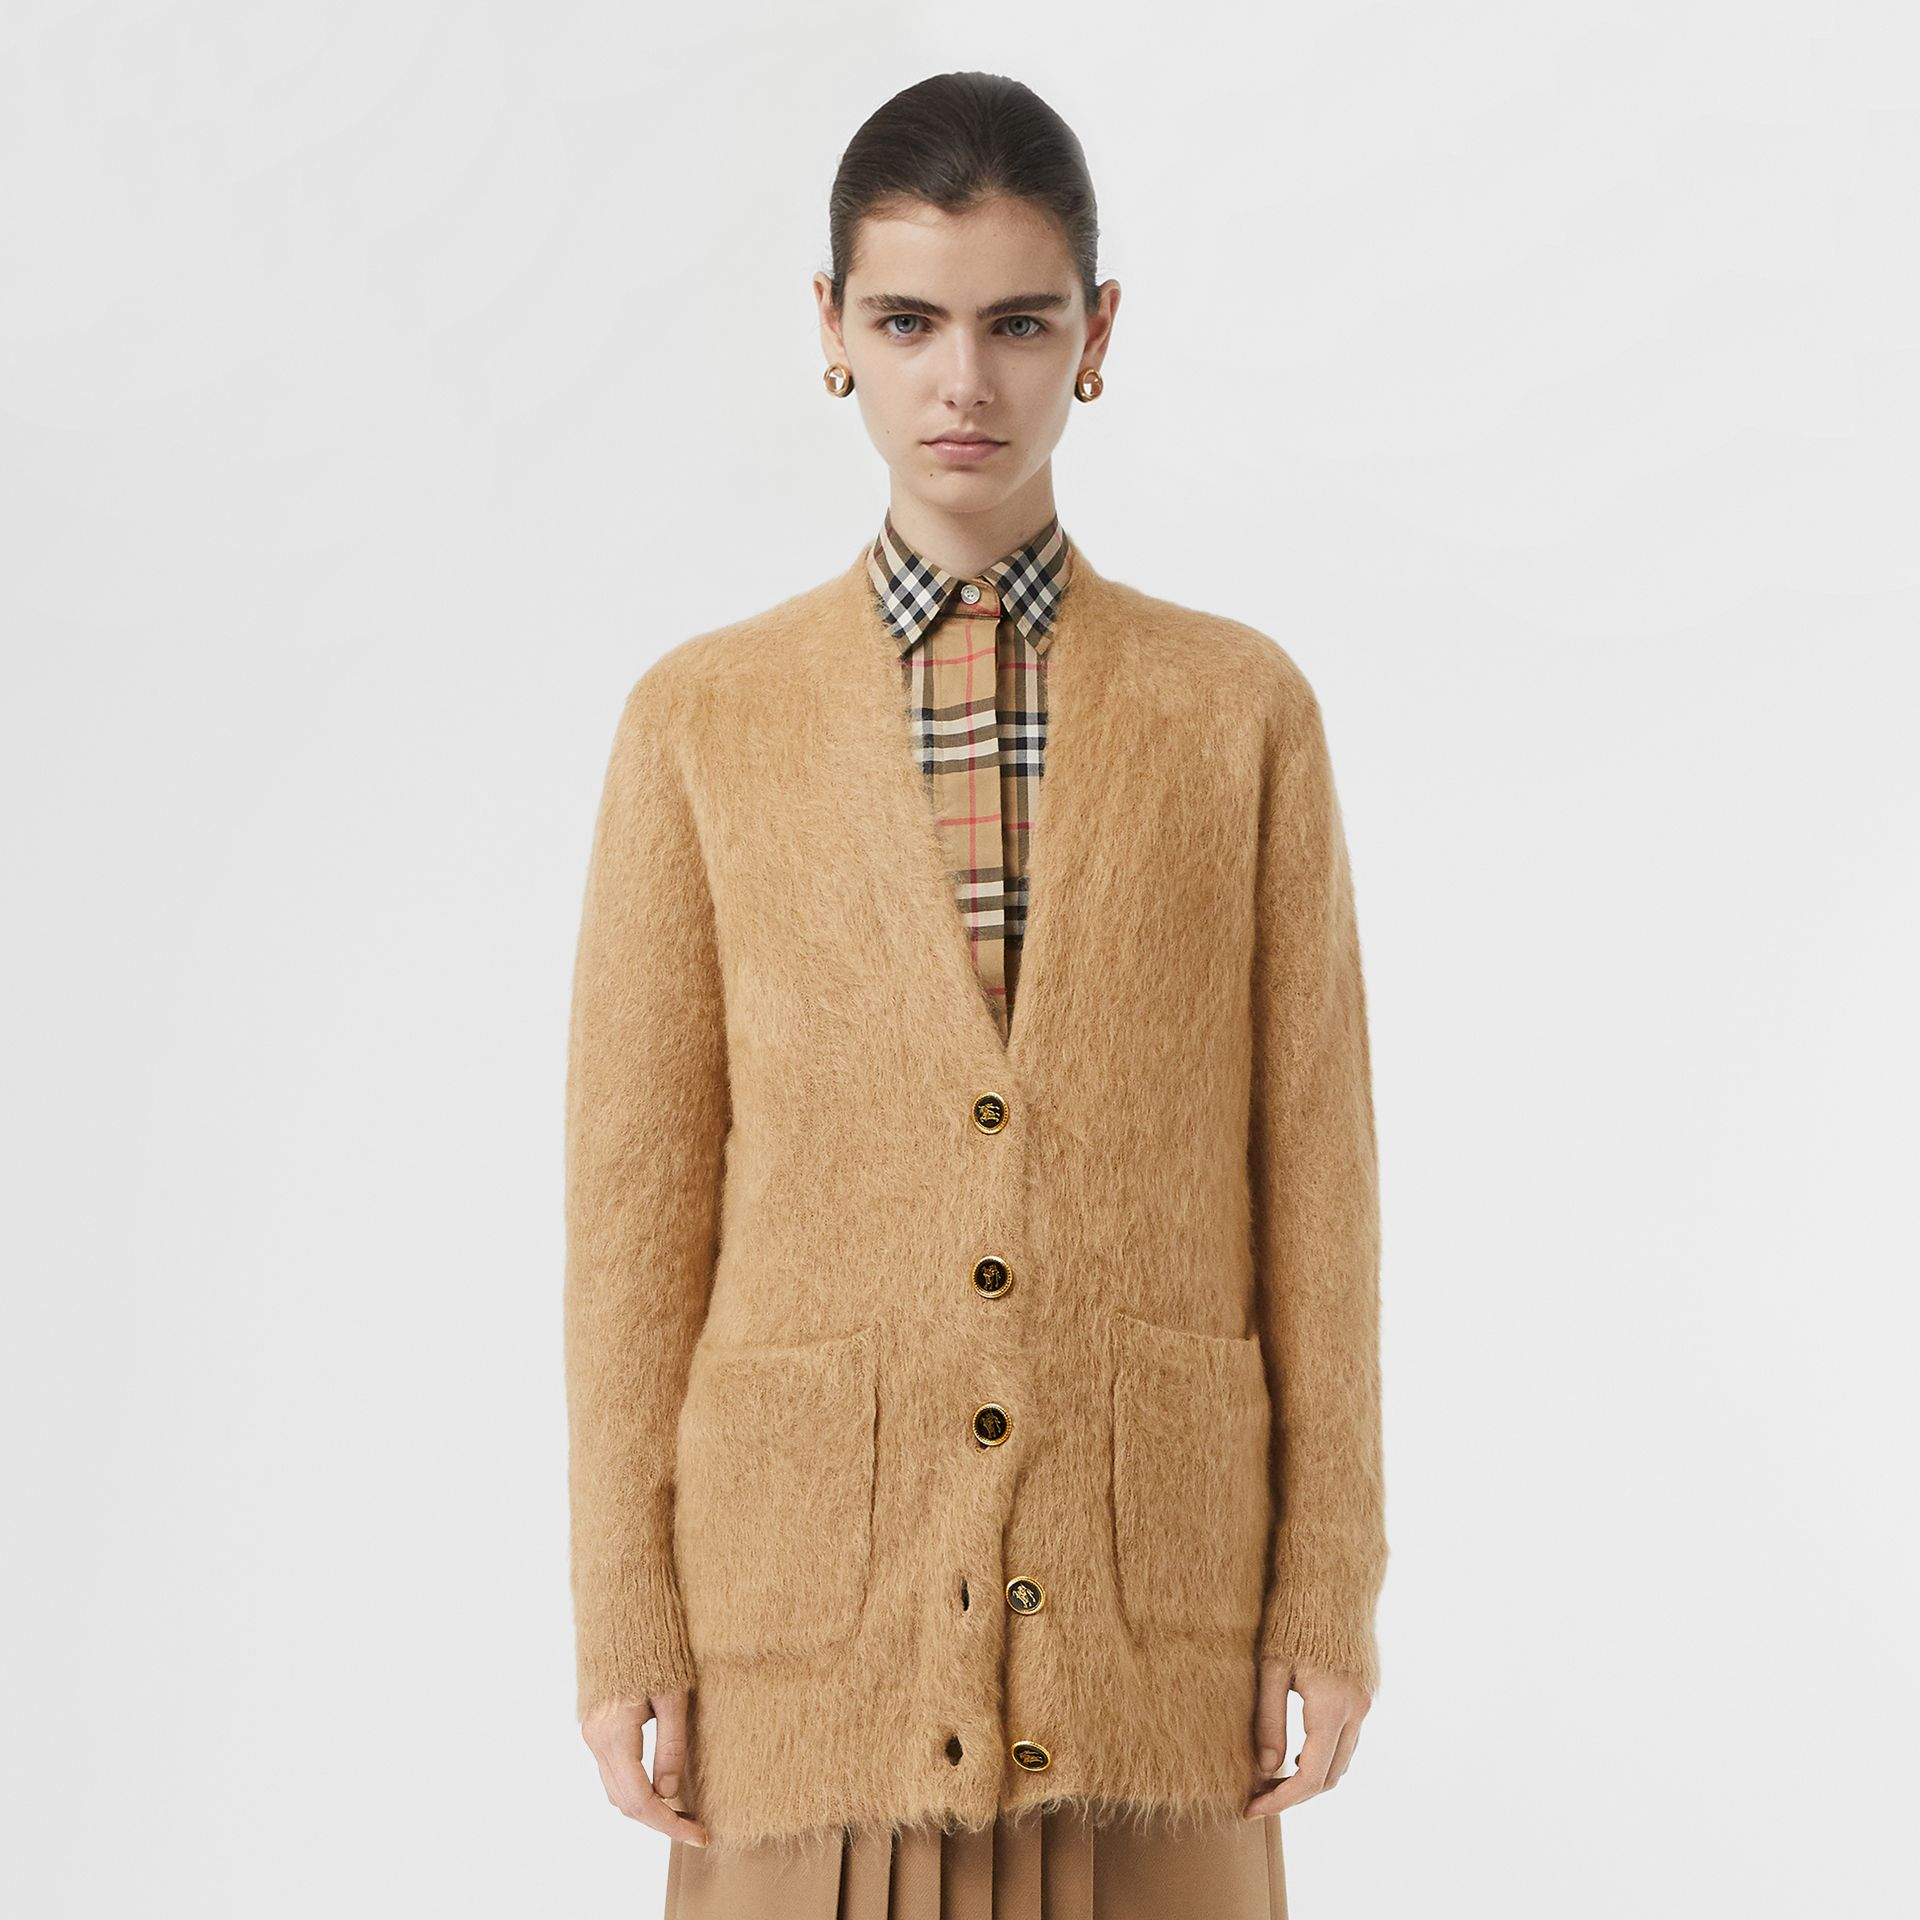 Silk Mohair Wool Blend V-neck Cardigan in Light Camel - Women | Burberry - gallery image 7